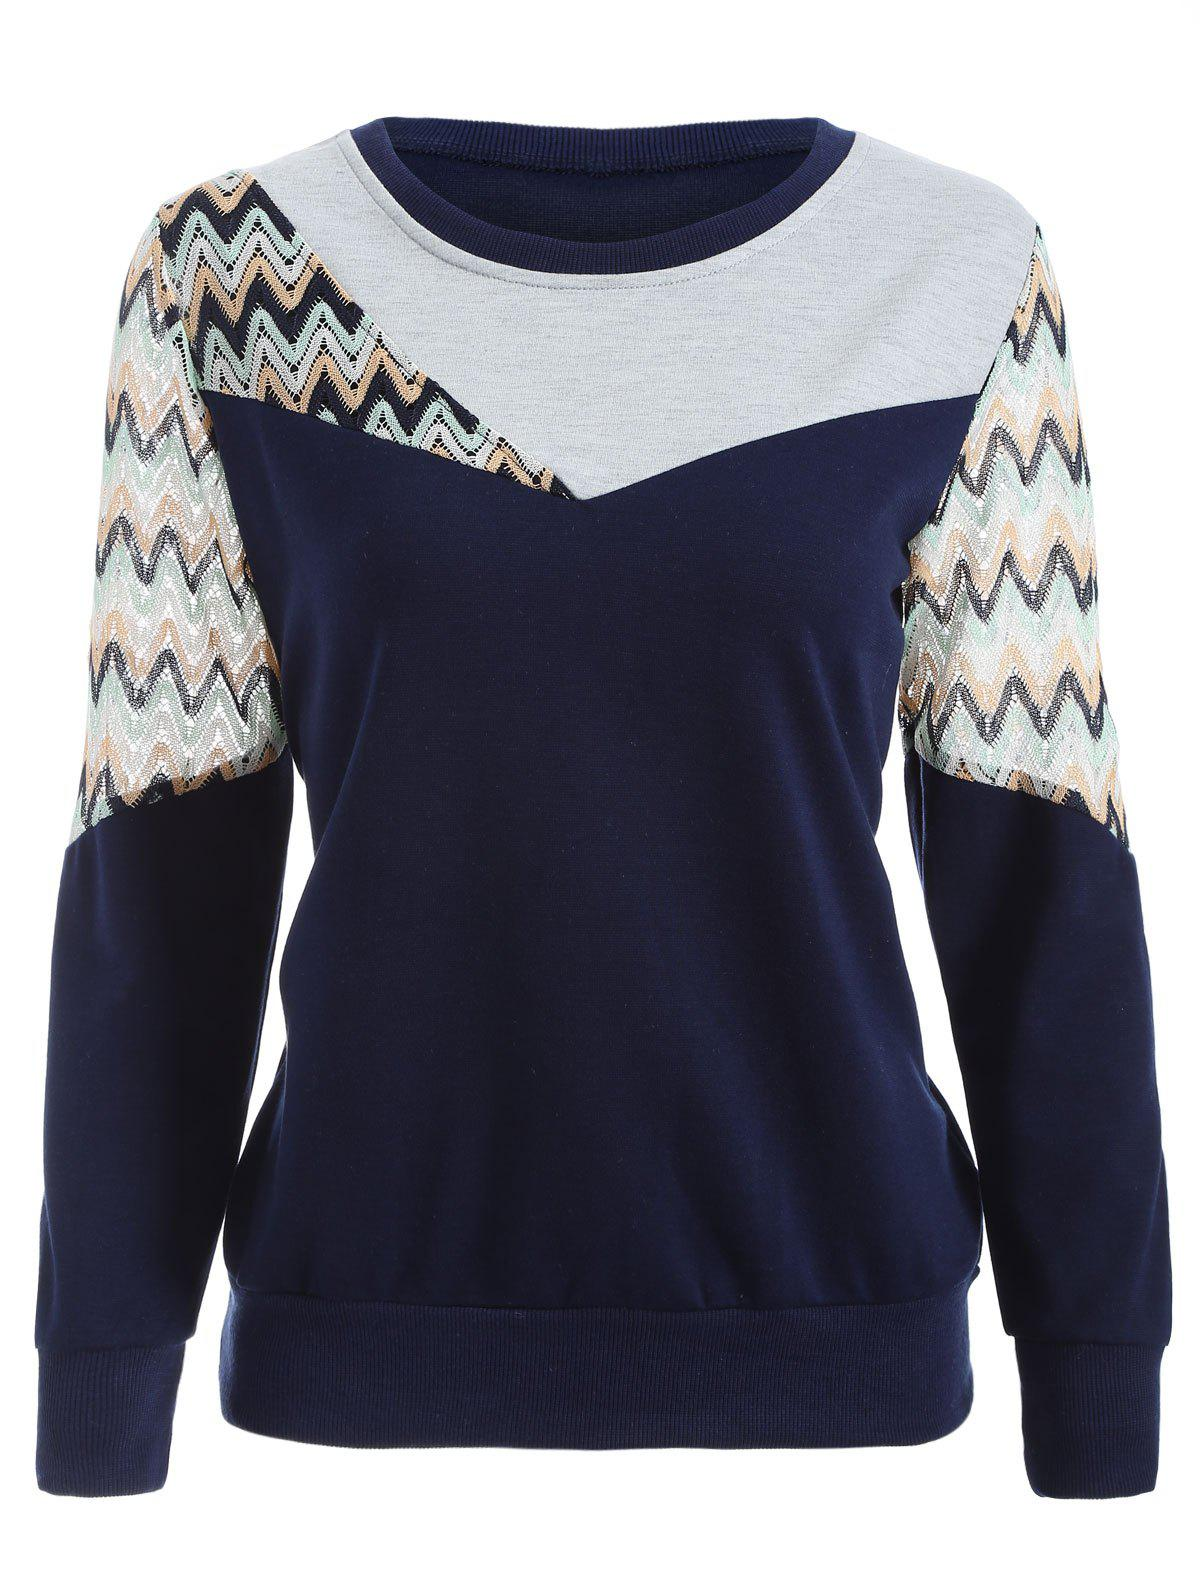 Crew Neck Panelled Sweatshirt - PURPLISH BLUE 2XL